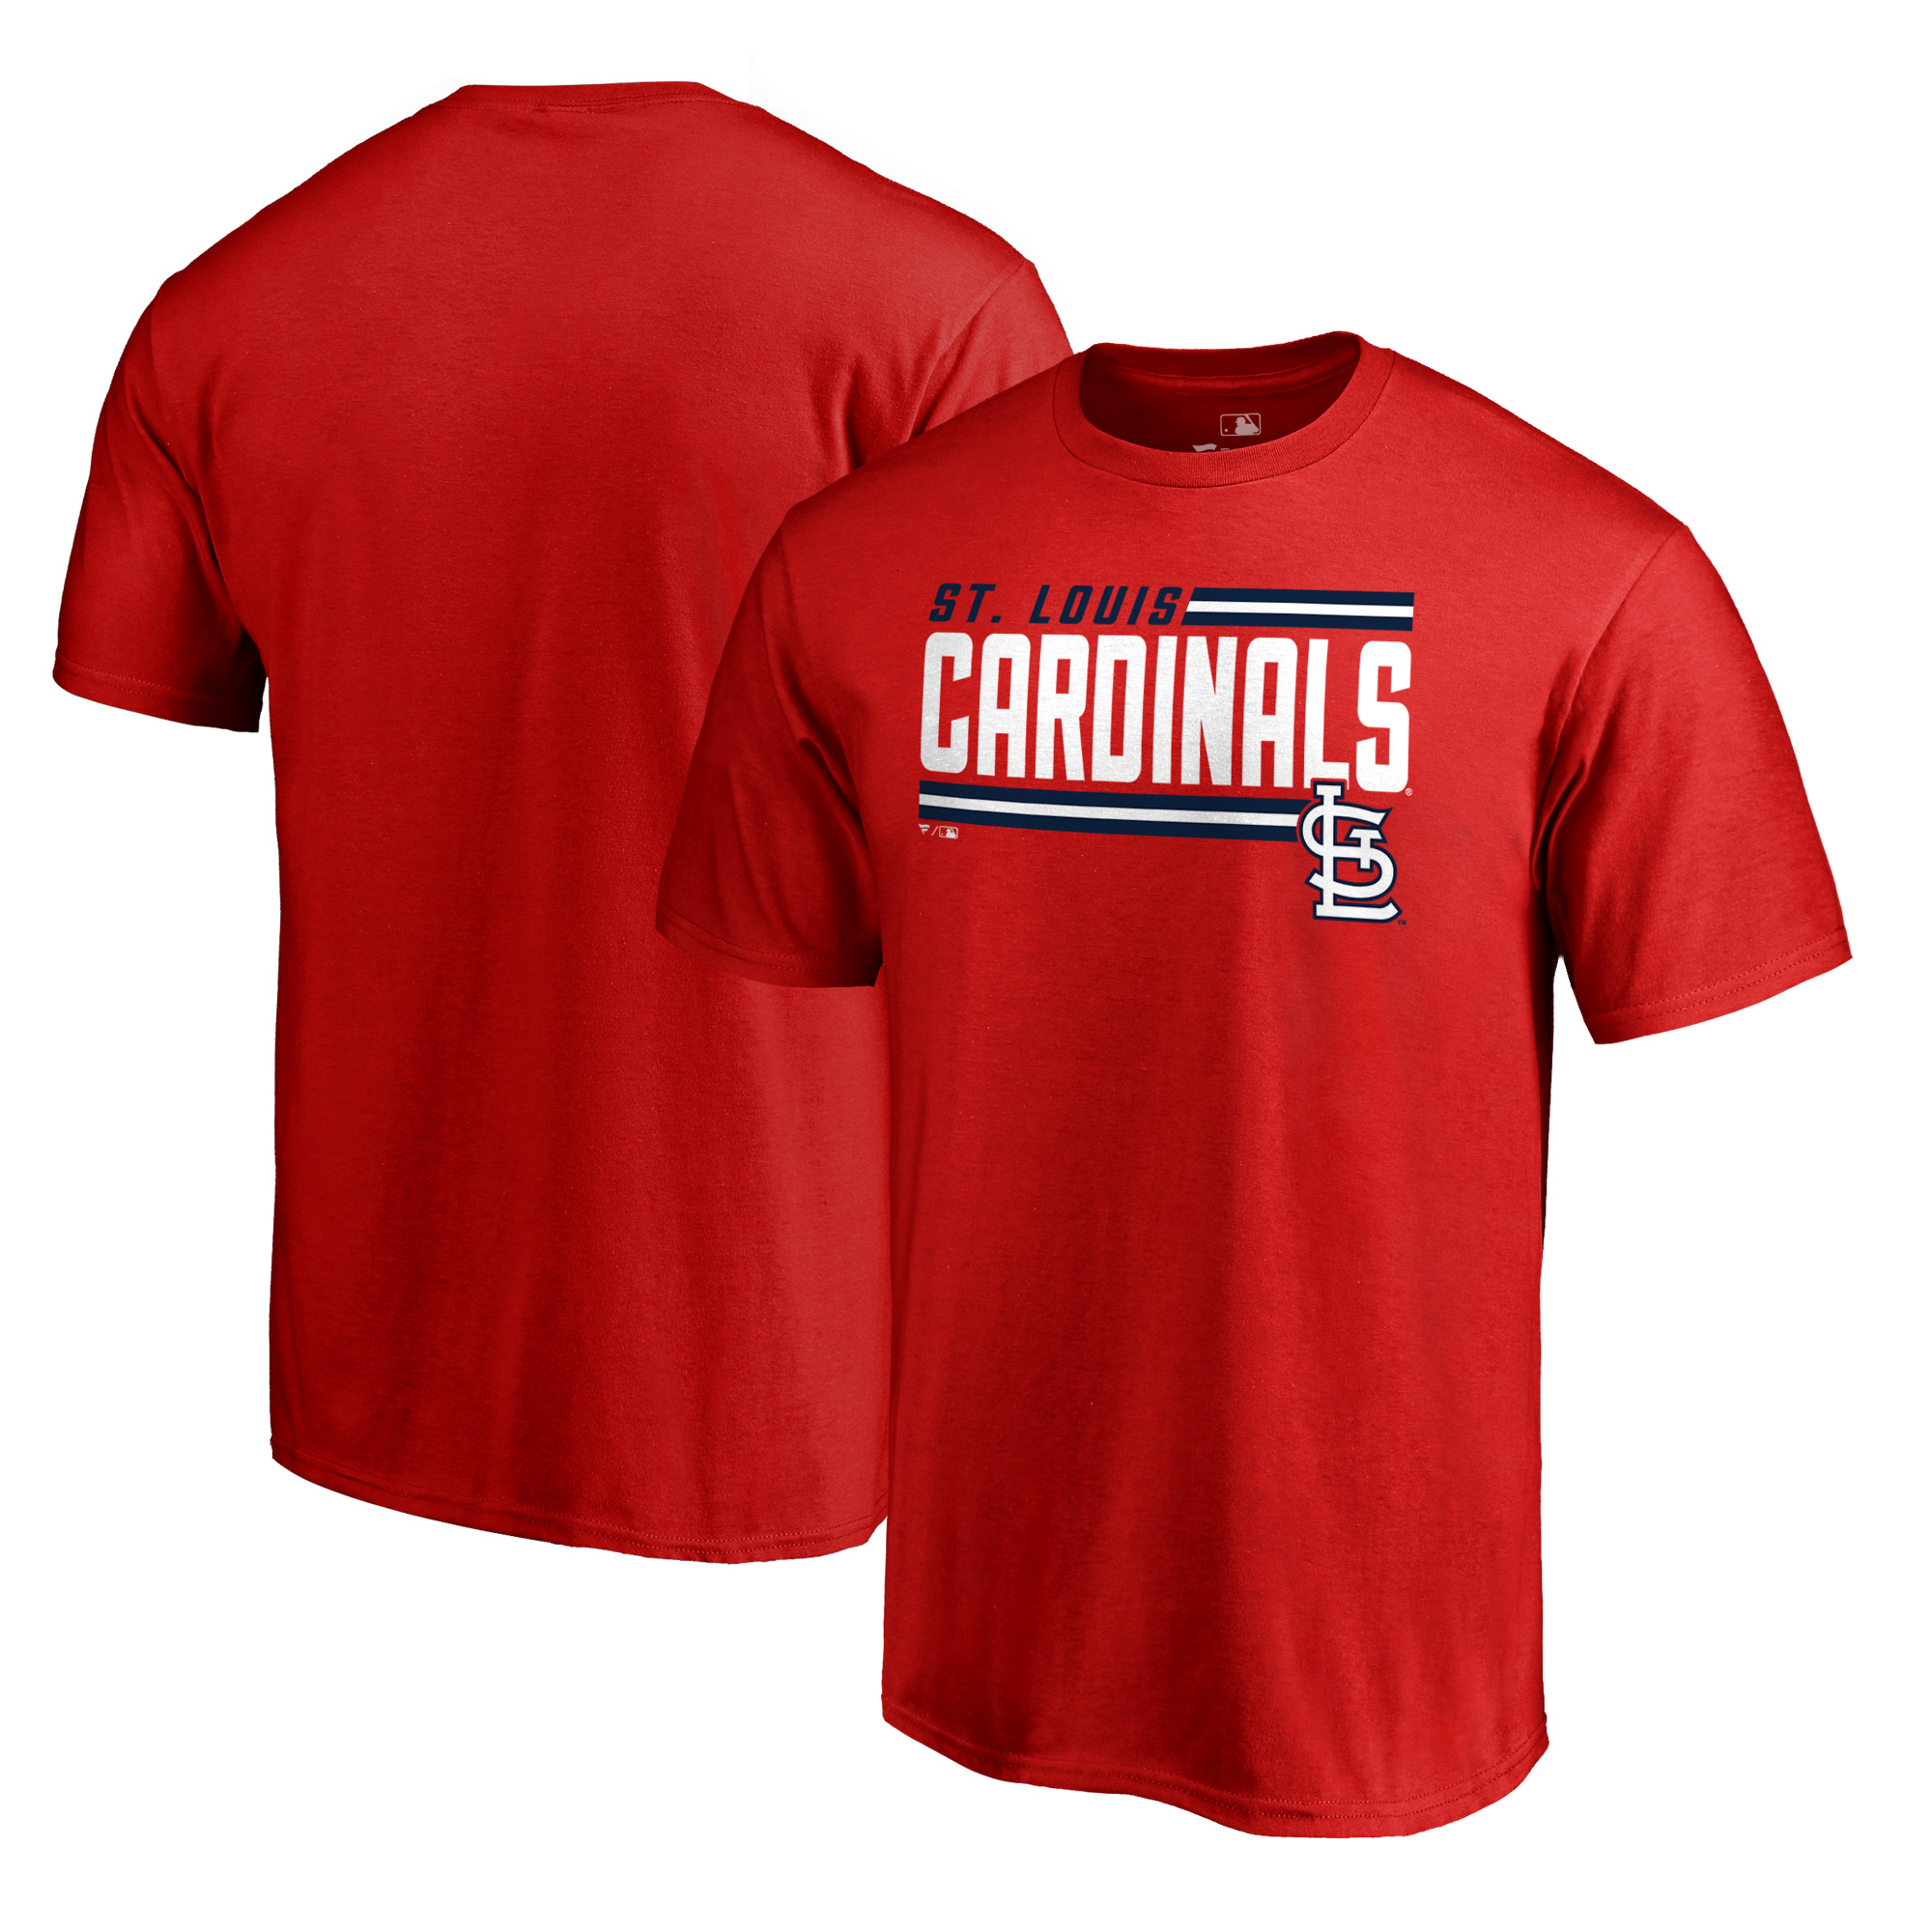 St. Louis Cardinals Fanatics Branded Onside Stripe T-Shirt - Red